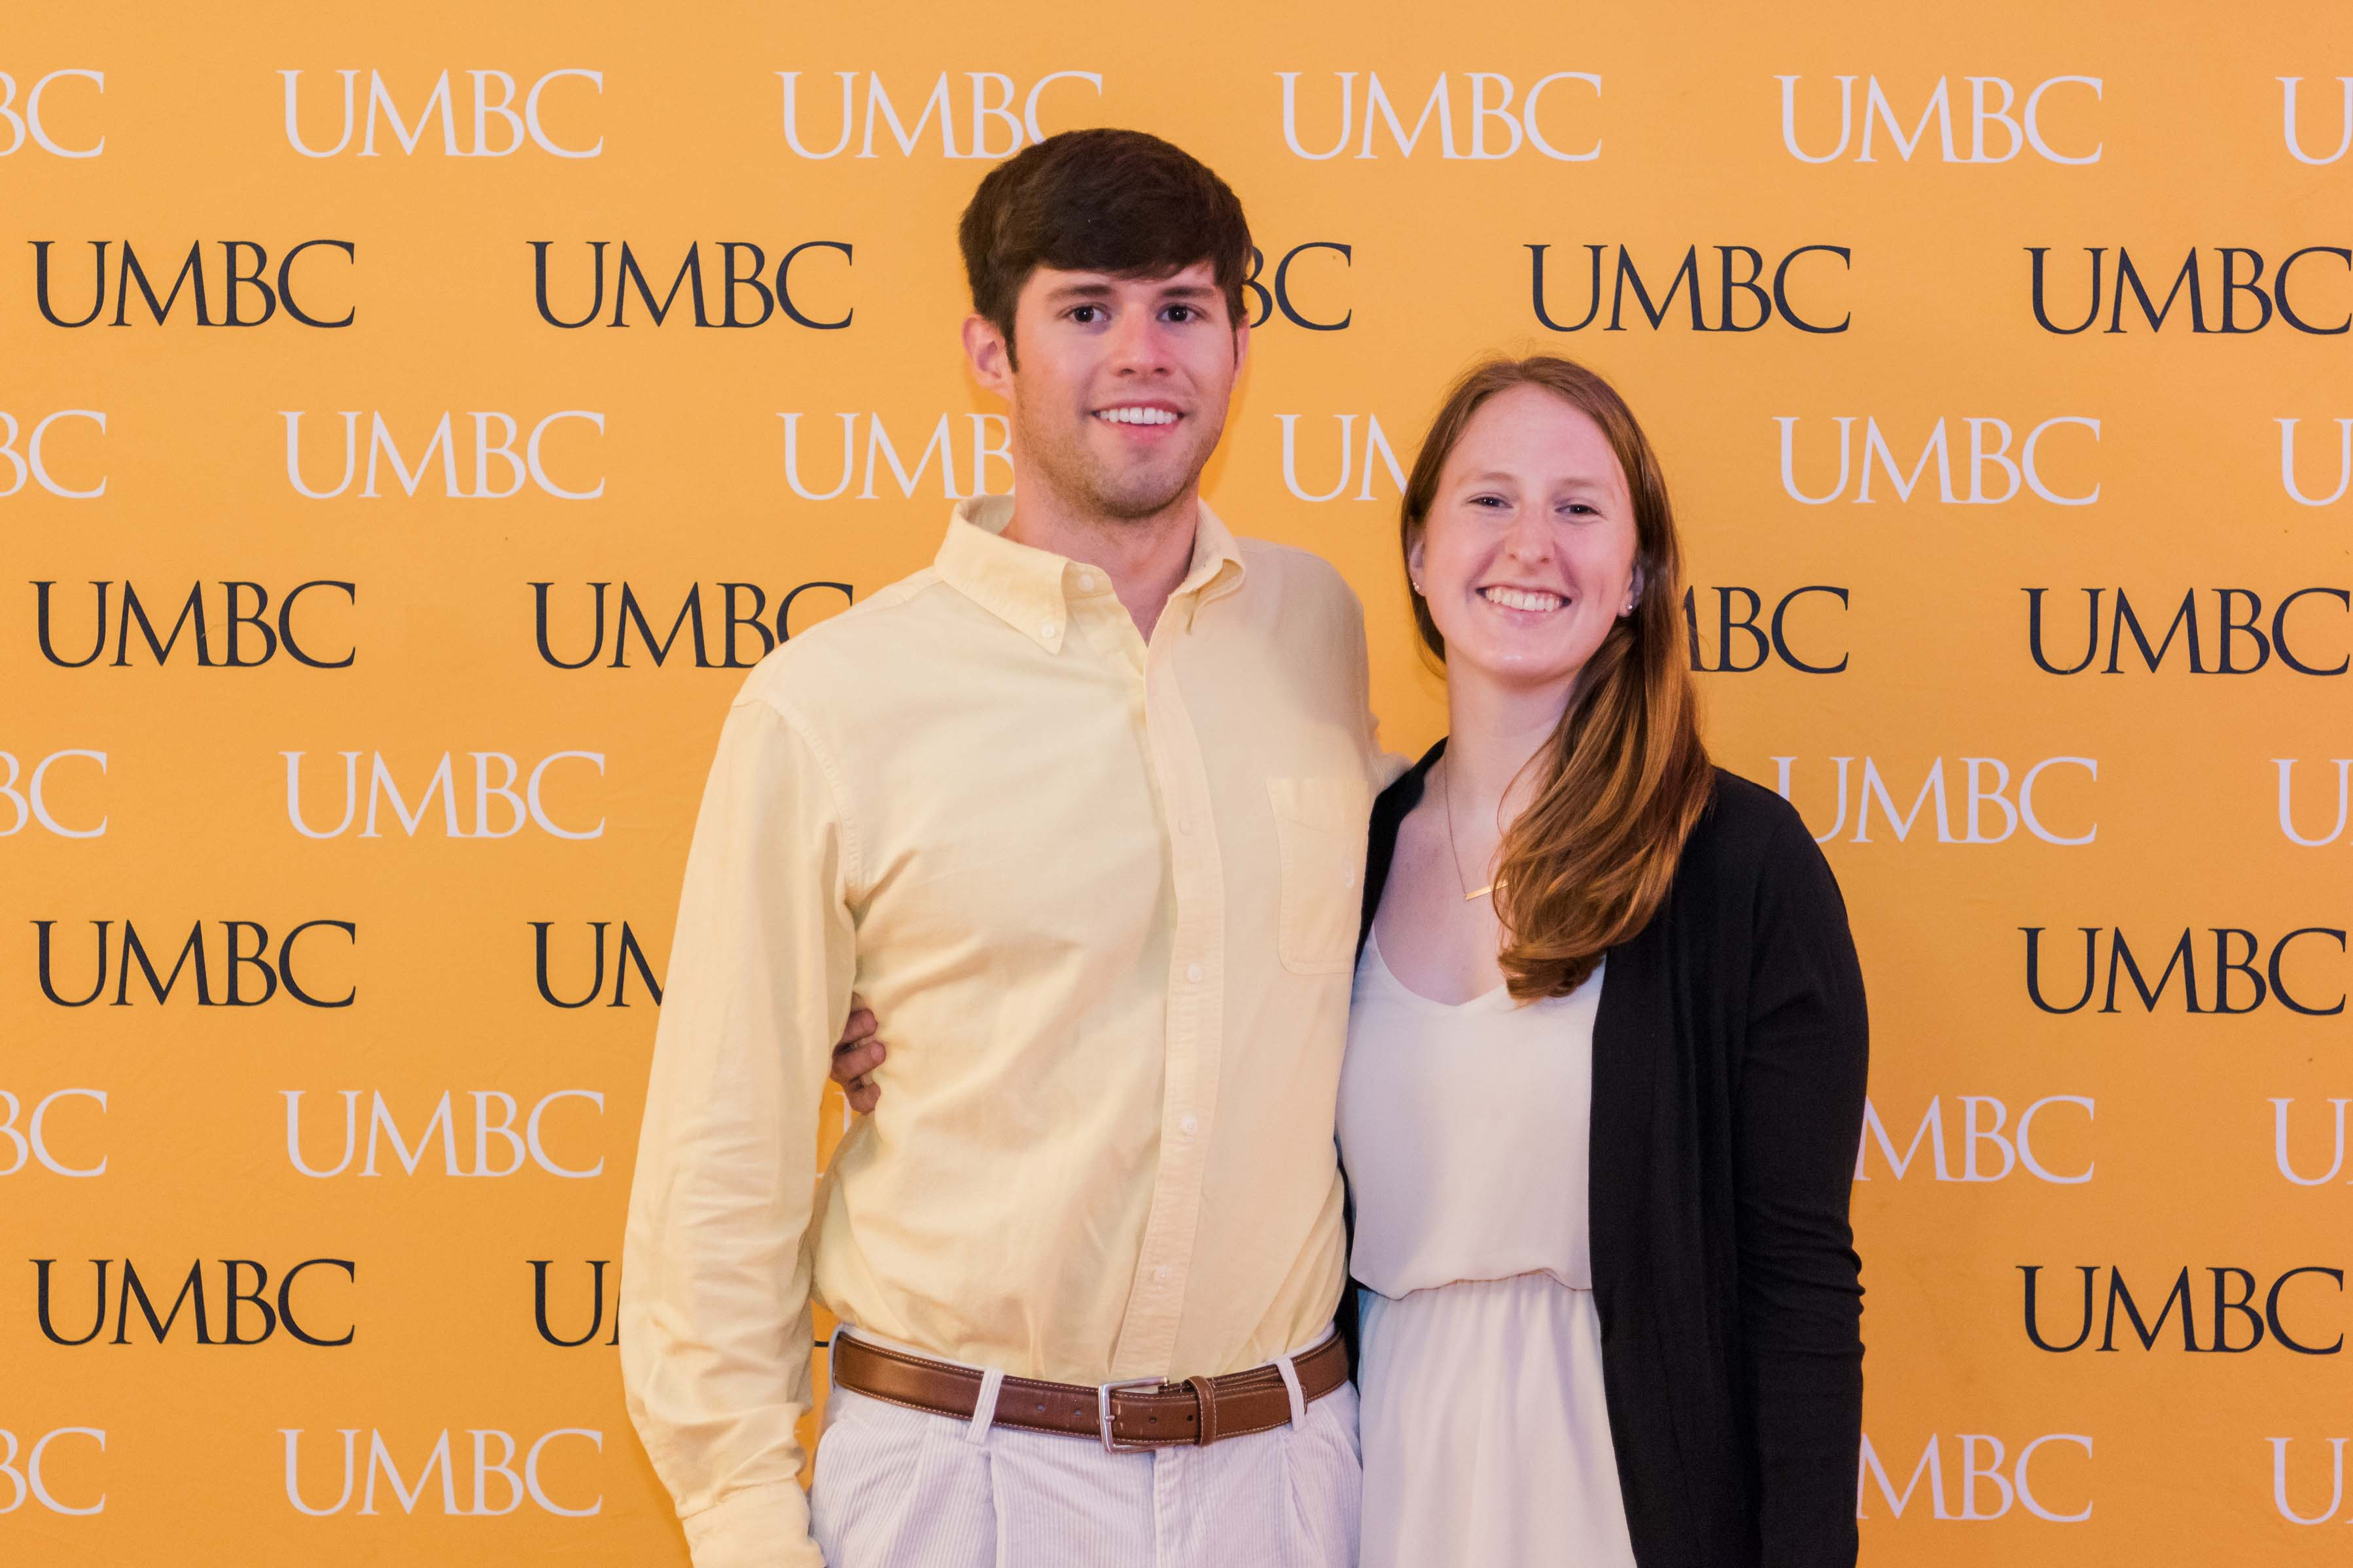 Man and woman pose together in front of UMBC wall at CYA wine tasting